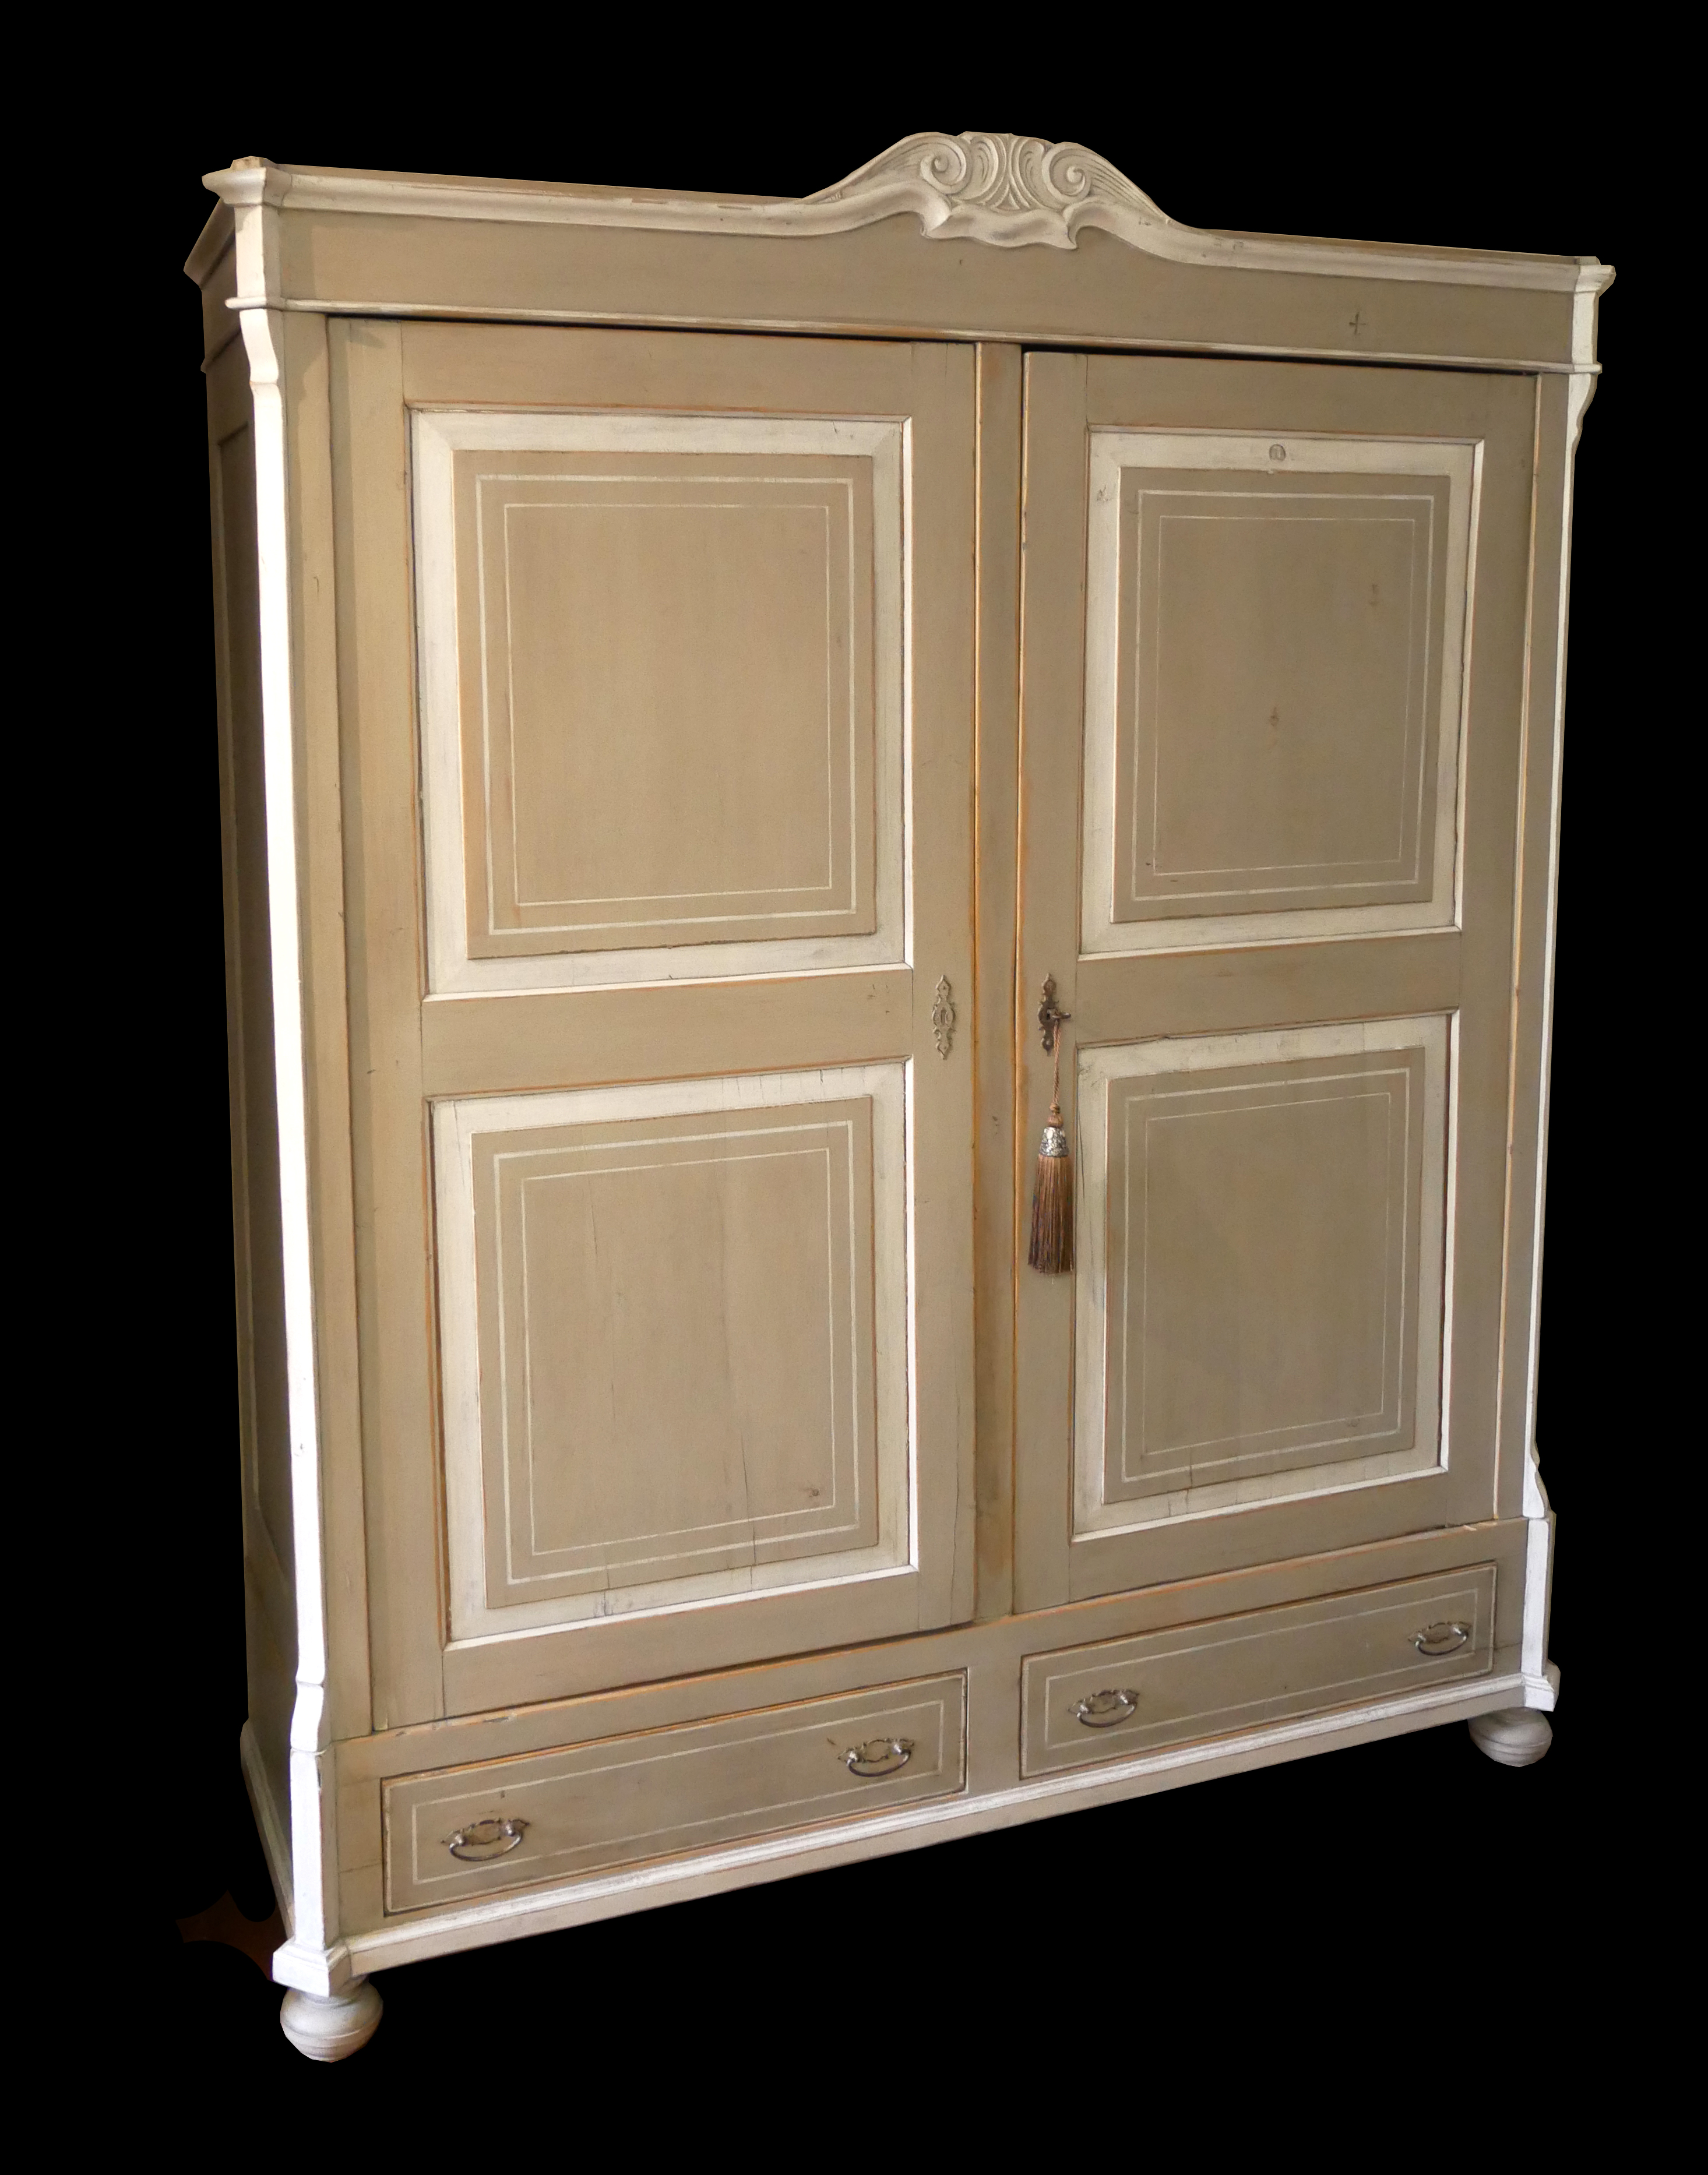 A 19TH CENTURY DUTCH HANGING CUPBOARD With two panelled doors above two drawers, in grey and cream